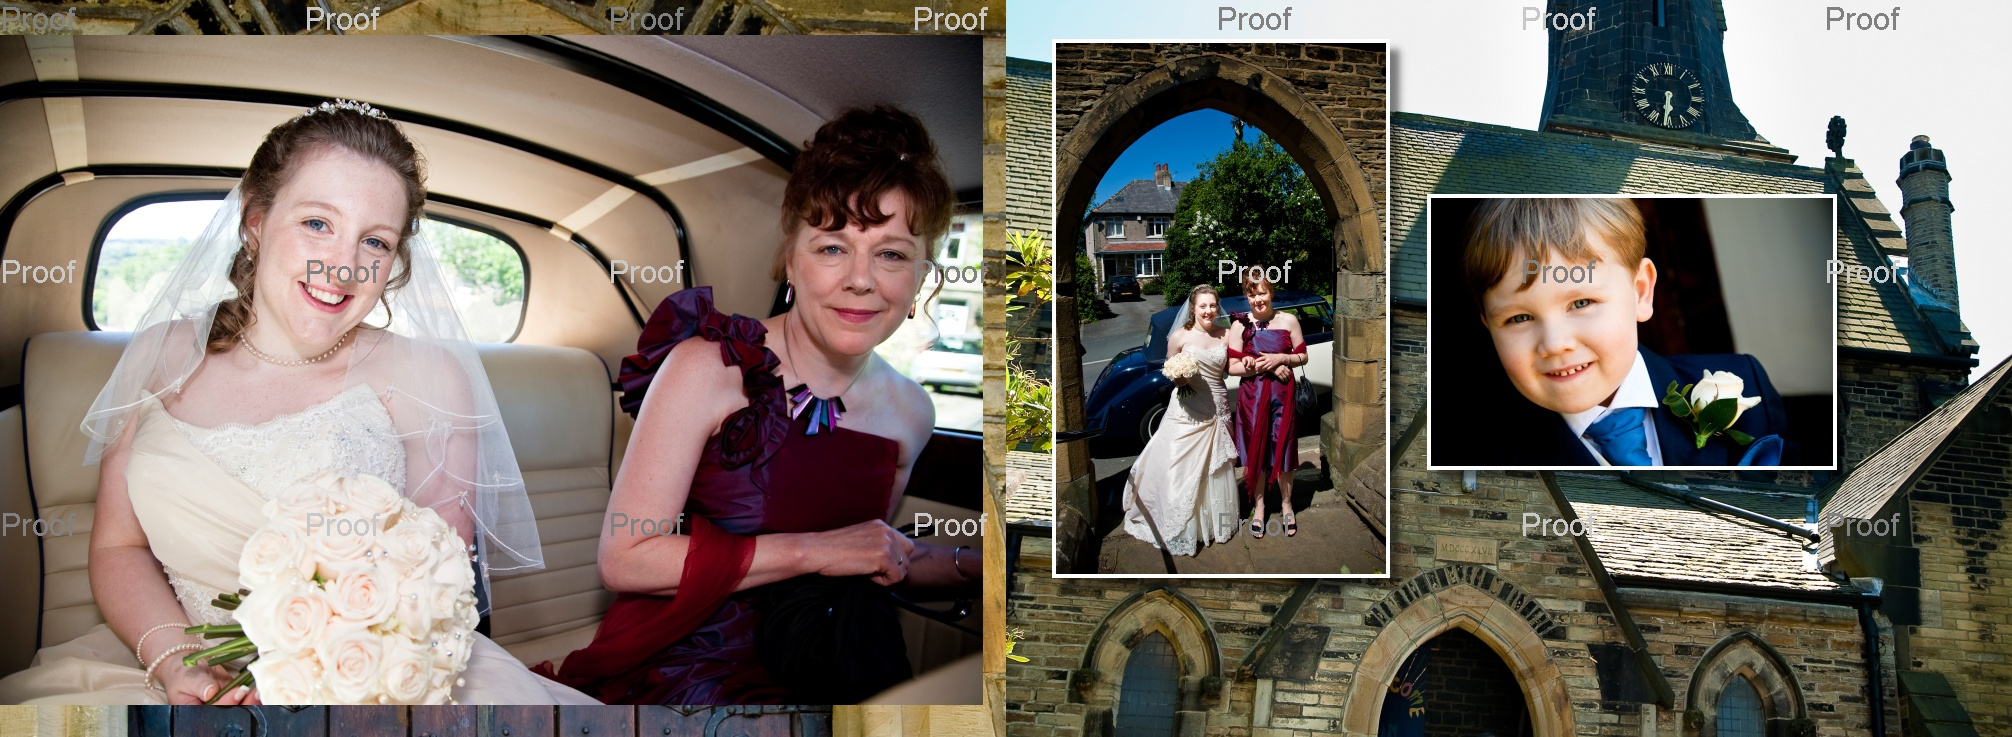 bride arriving at St Marys Church in Wyke in wedding car being given away by her Mum. pages 12-13